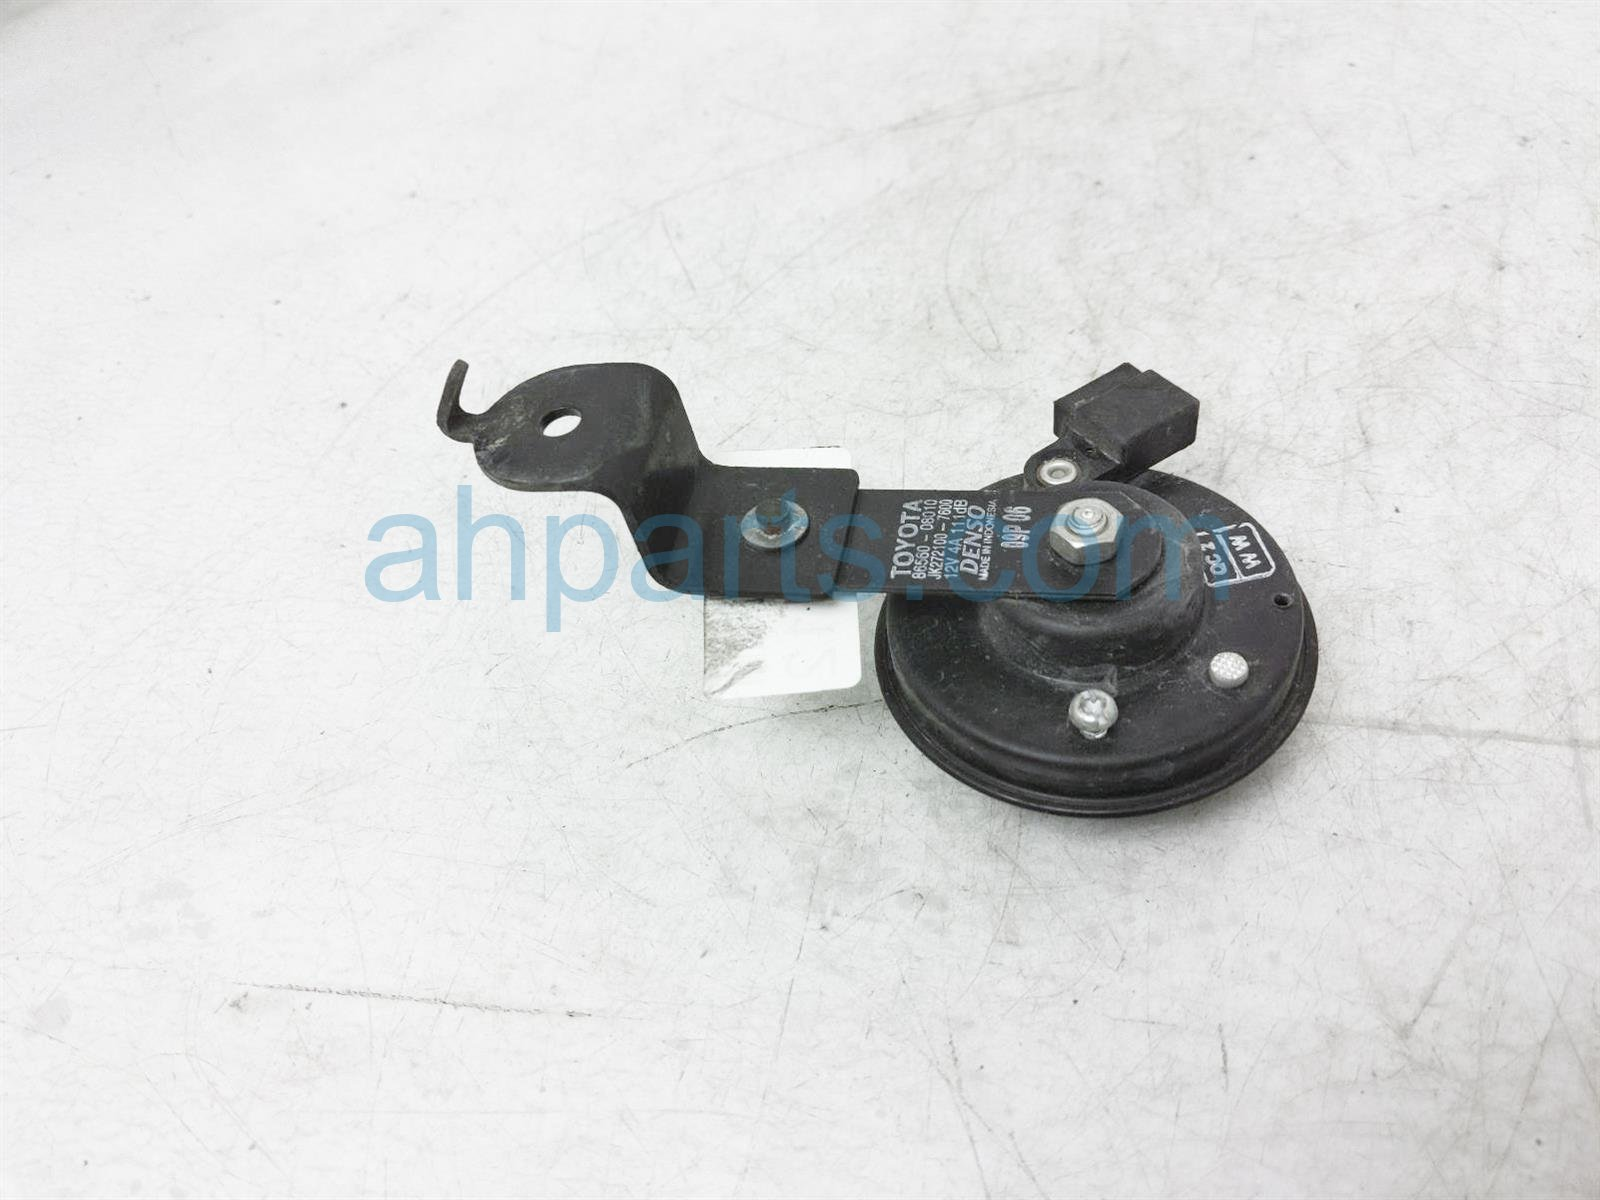 2013 Toyota Sienna Security Alarm Horn 86560 08010 Replacement